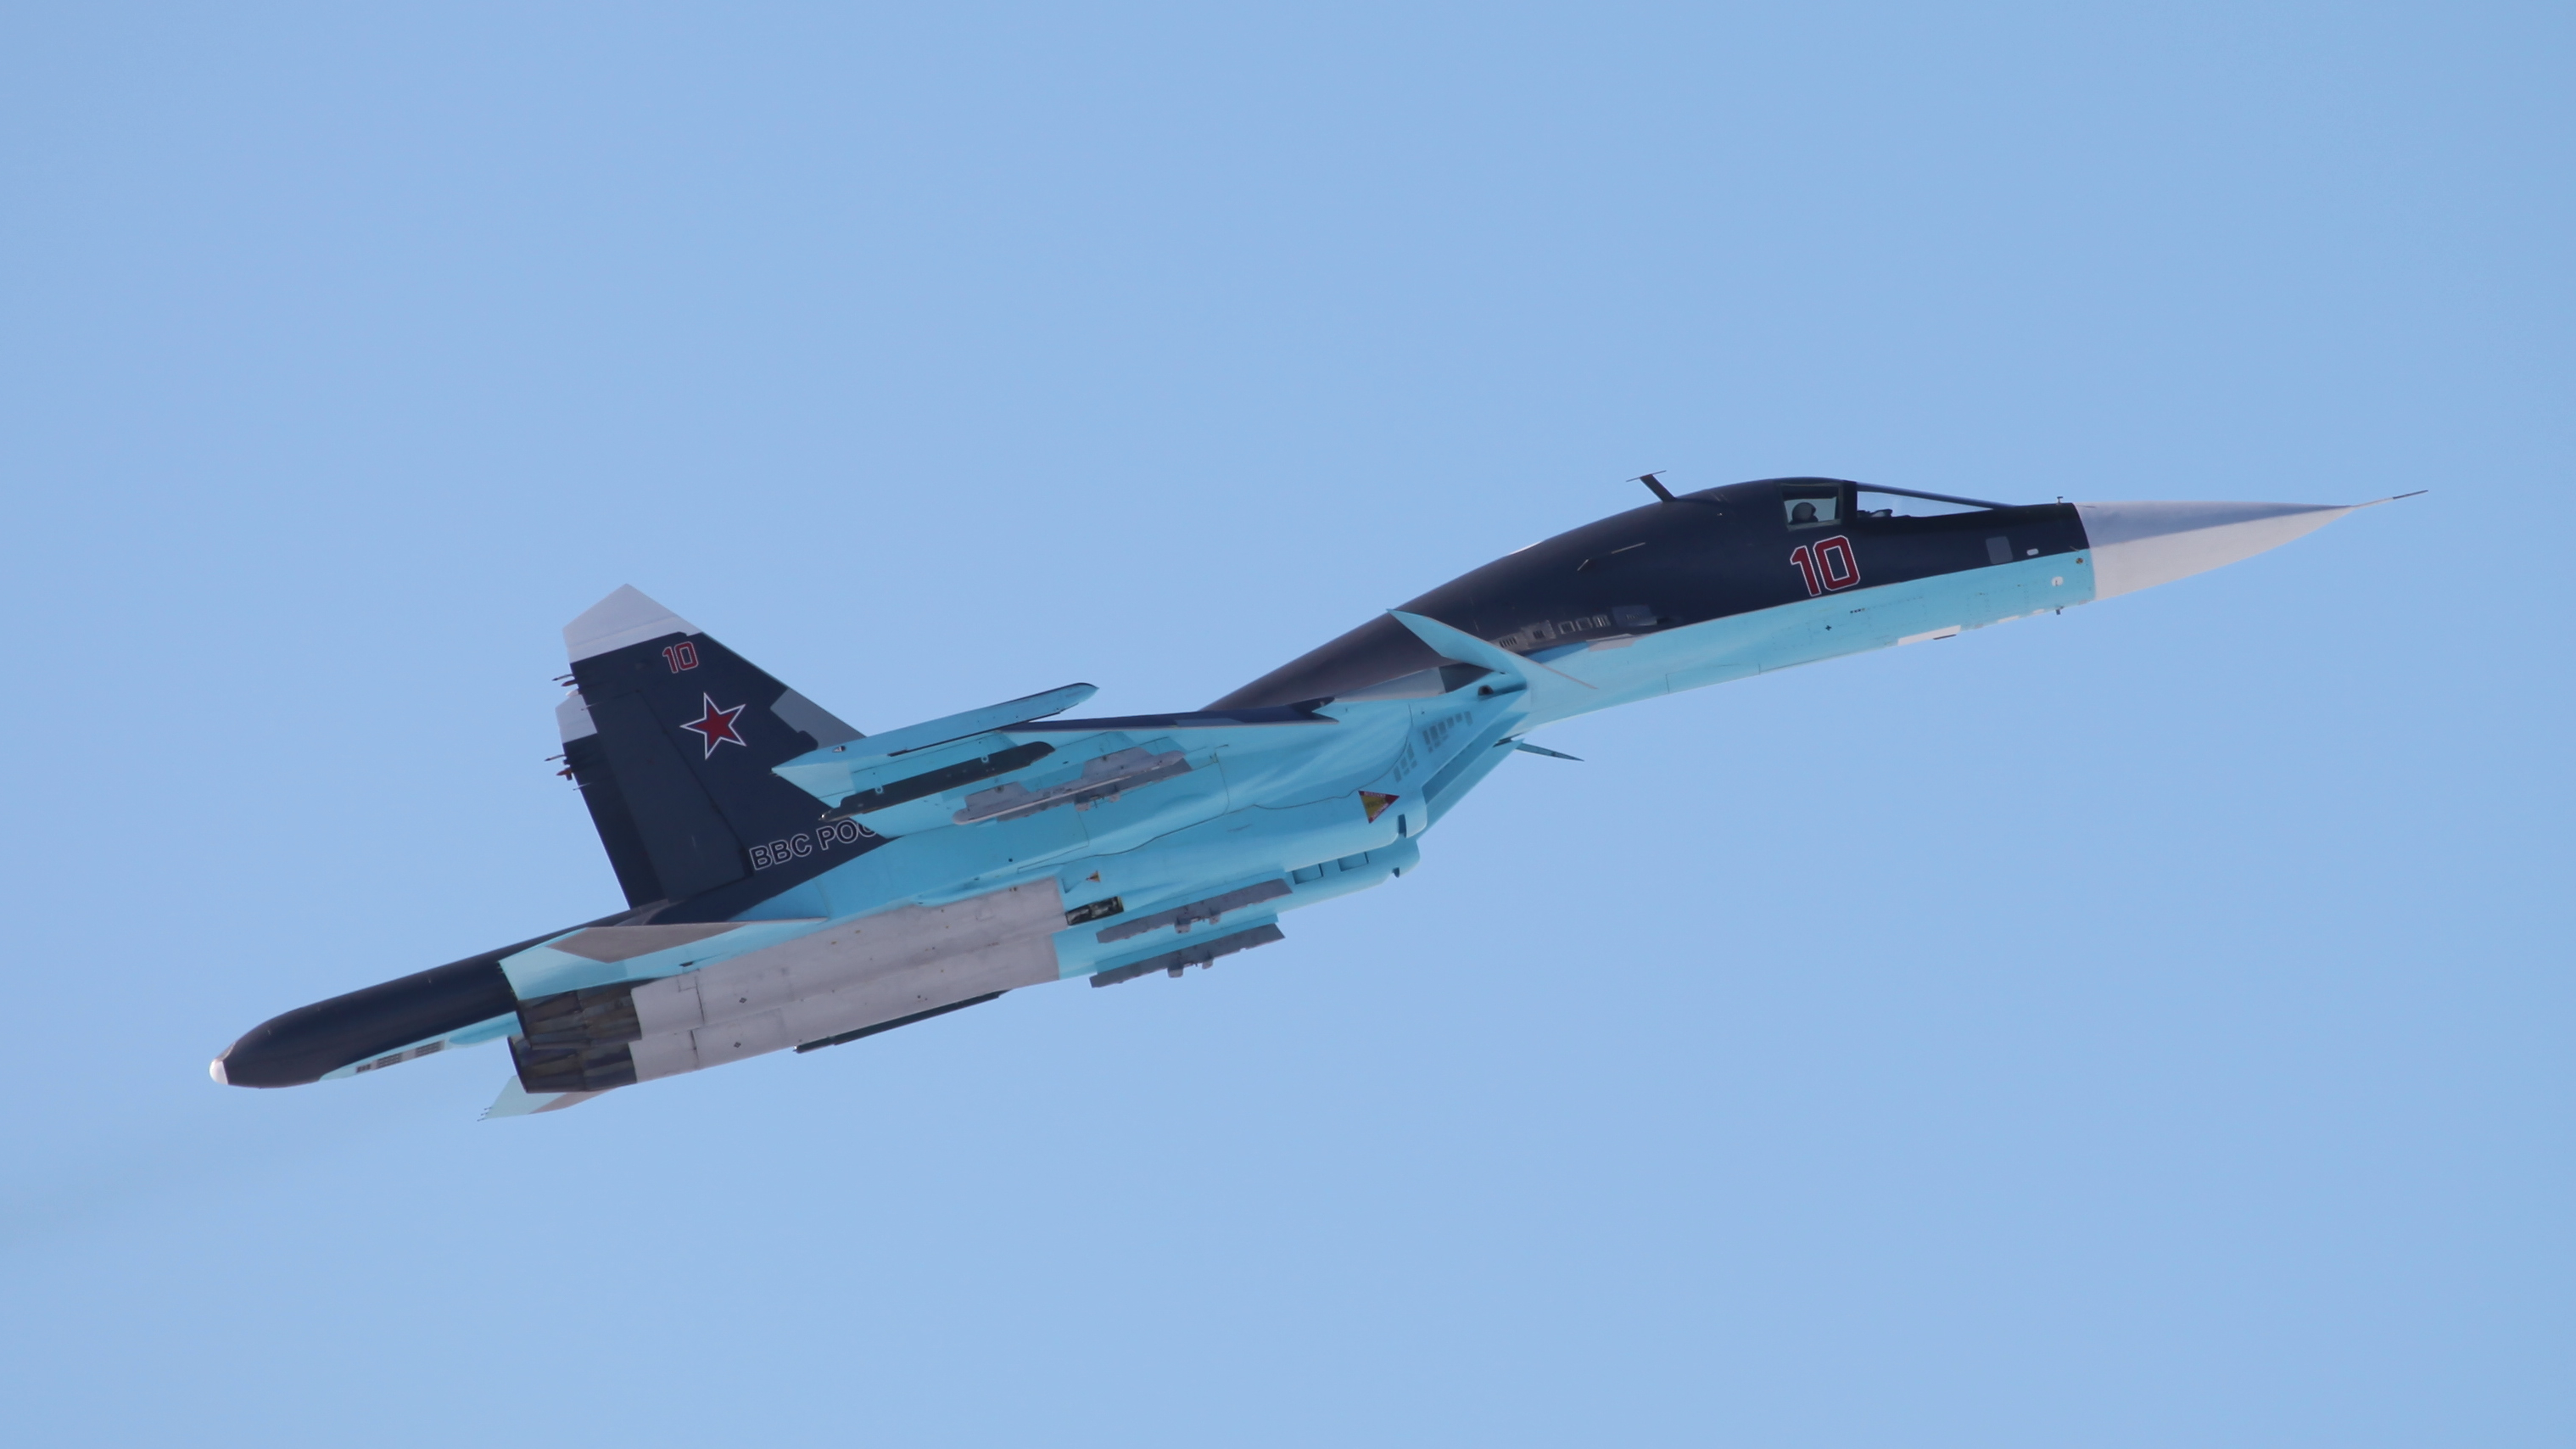 military picture sukhoi su - photo #14